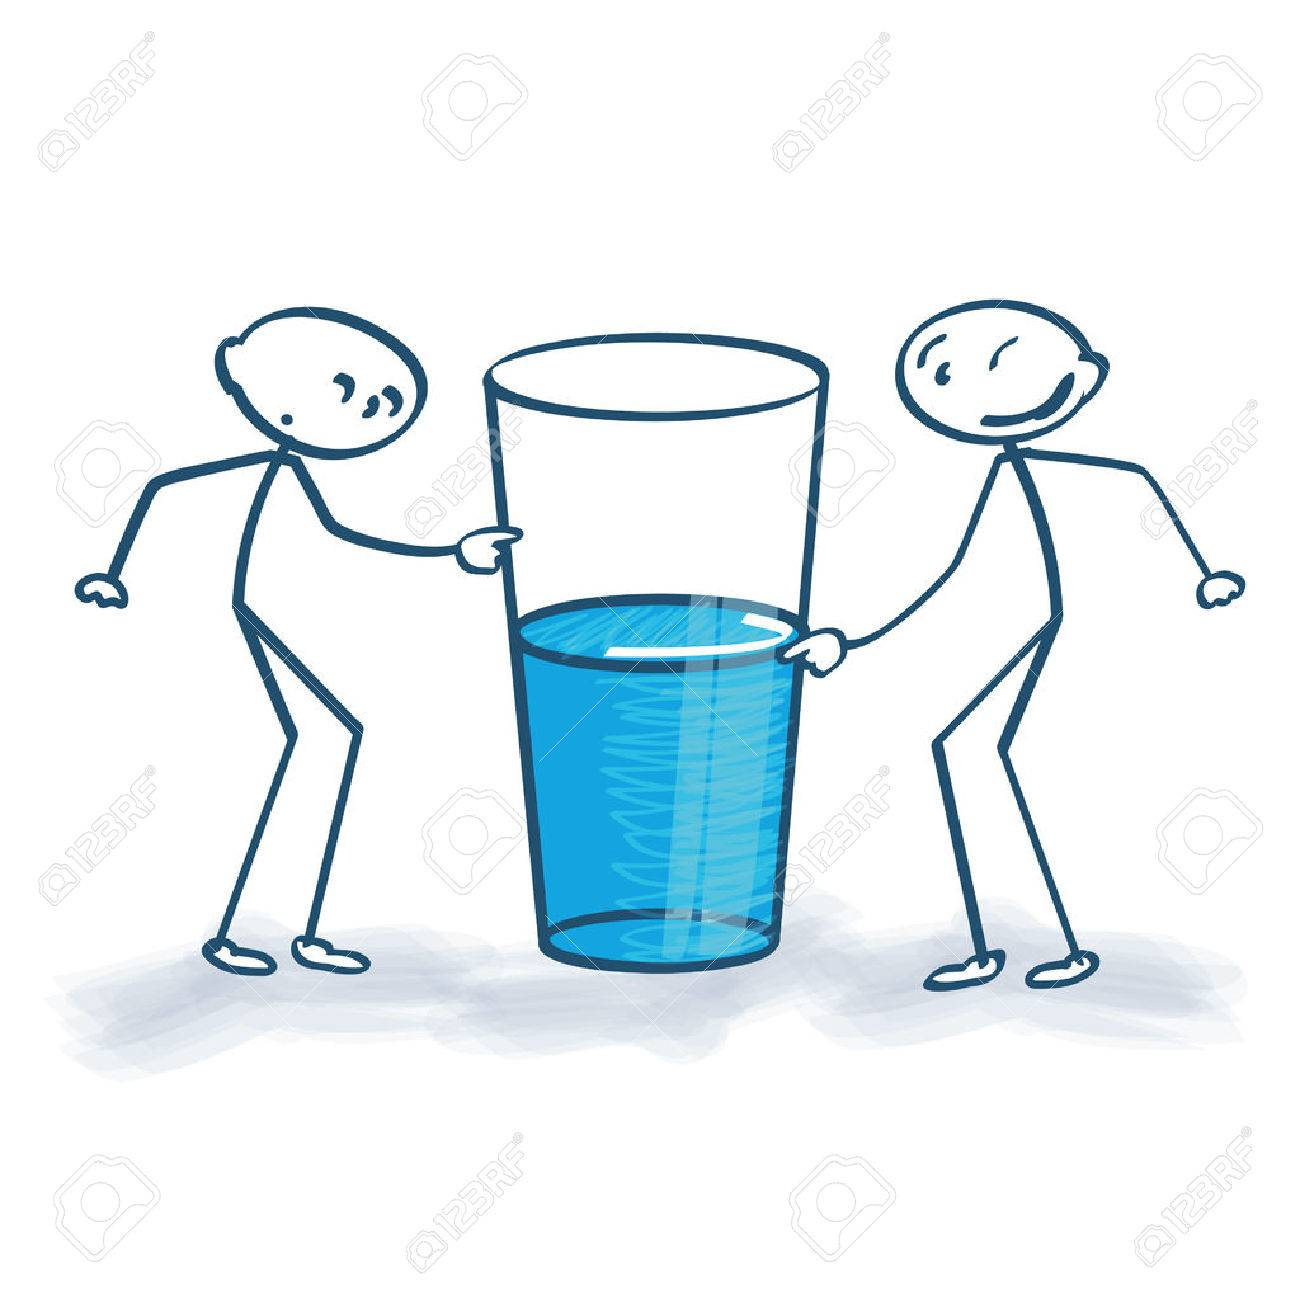 Stick figures with the glass is half full or half empty - 32550675